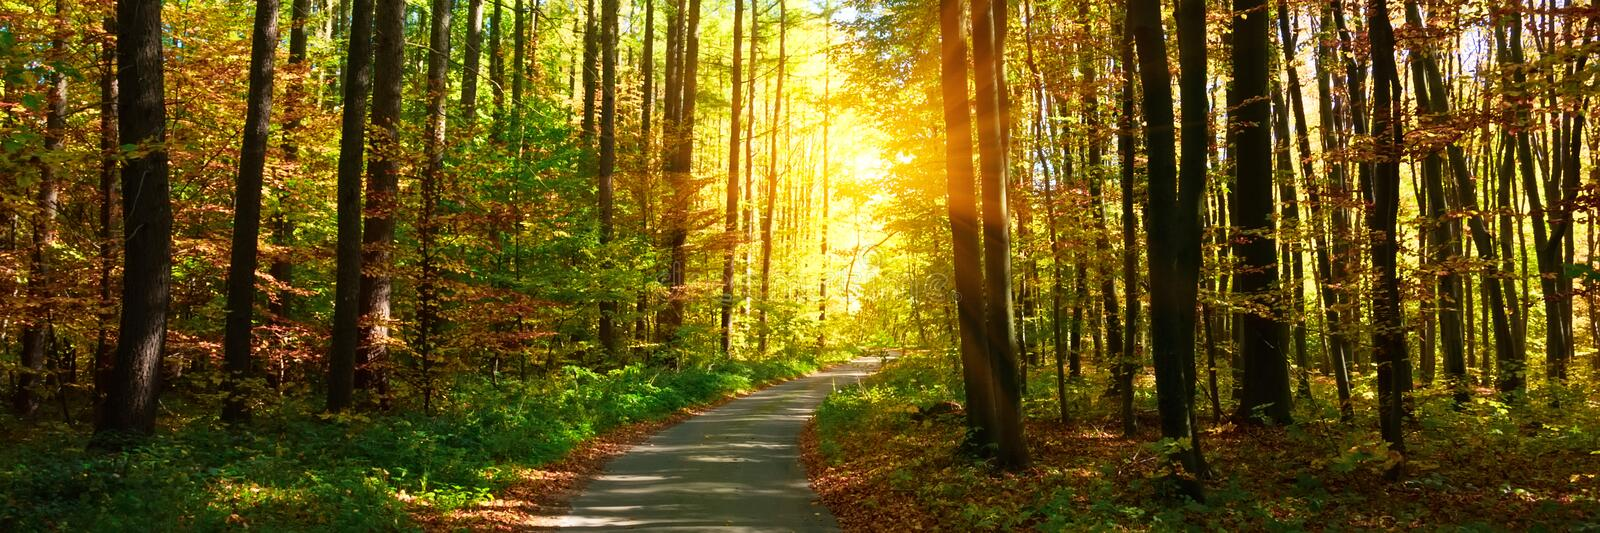 Banner 3:1. Autumn forest with footpath leading into the scene. Sunlight rays through the autumn tree branches. Copy space stock images